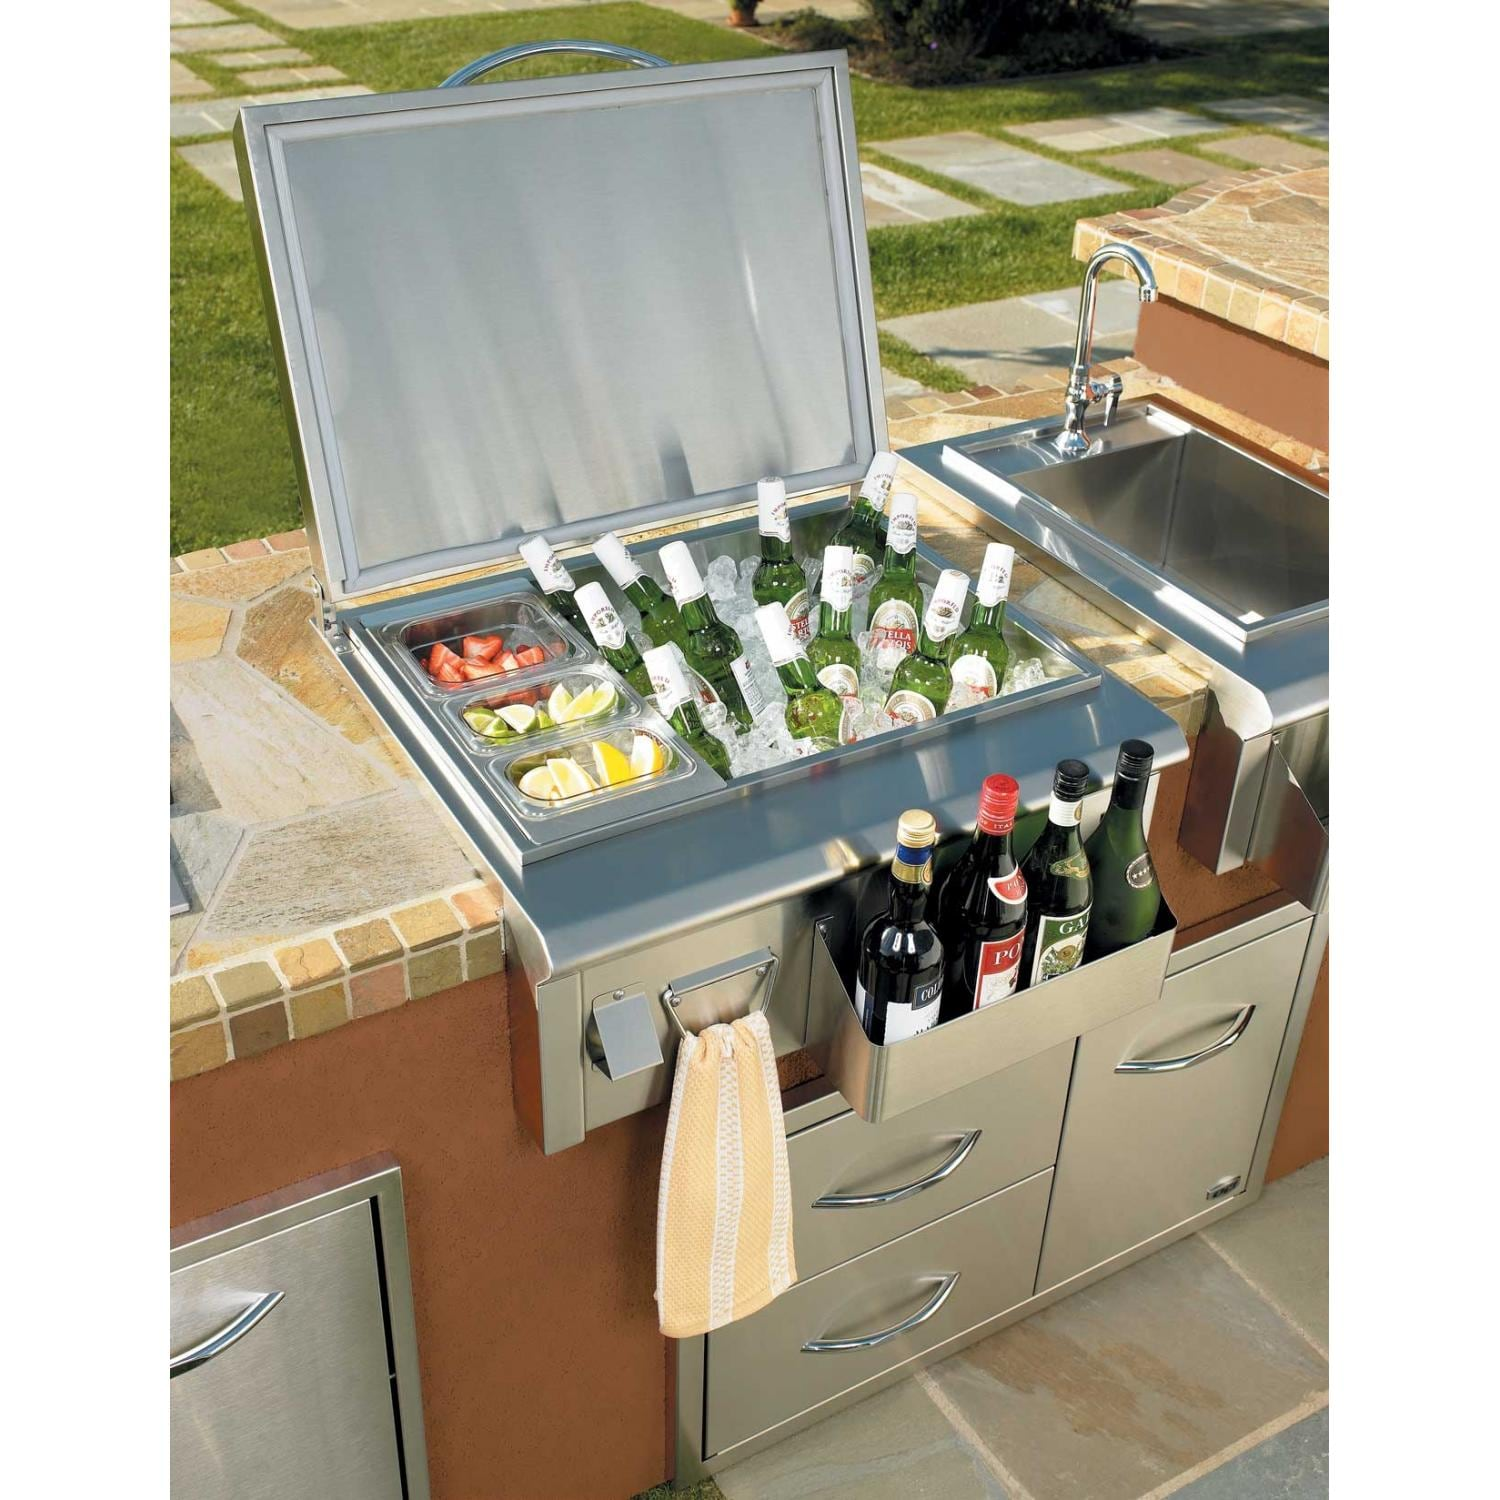 drop in grills for outdoor kitchens modern kitchen lights oci 27 inch drop-in ice bin cooler : shopperschoice.com